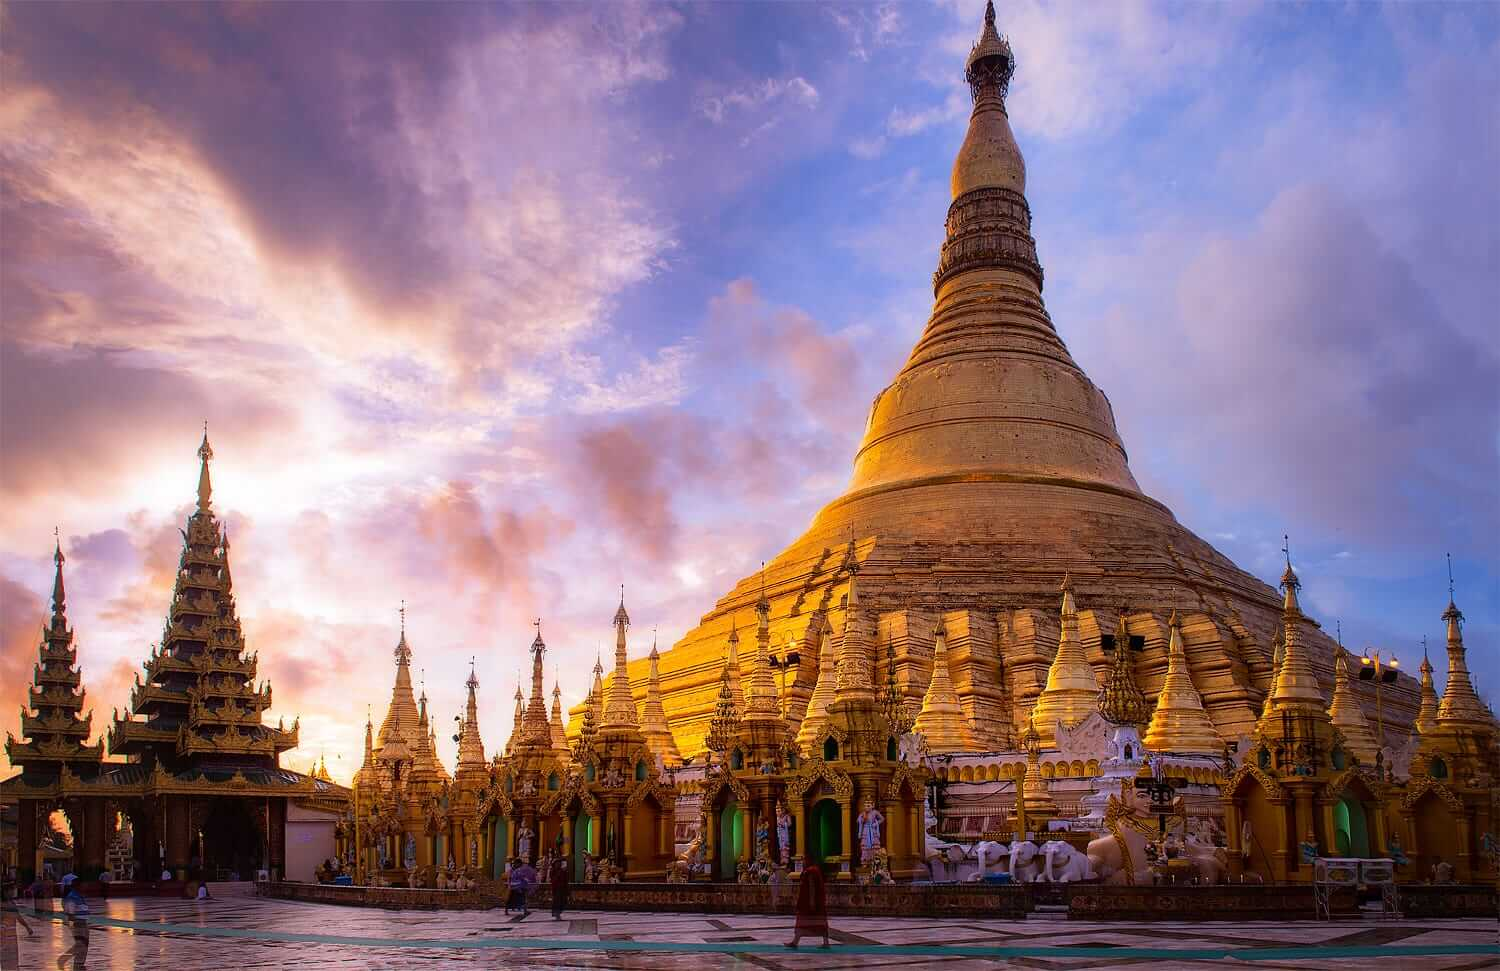 Shwedagon Pagoda at Sunrise